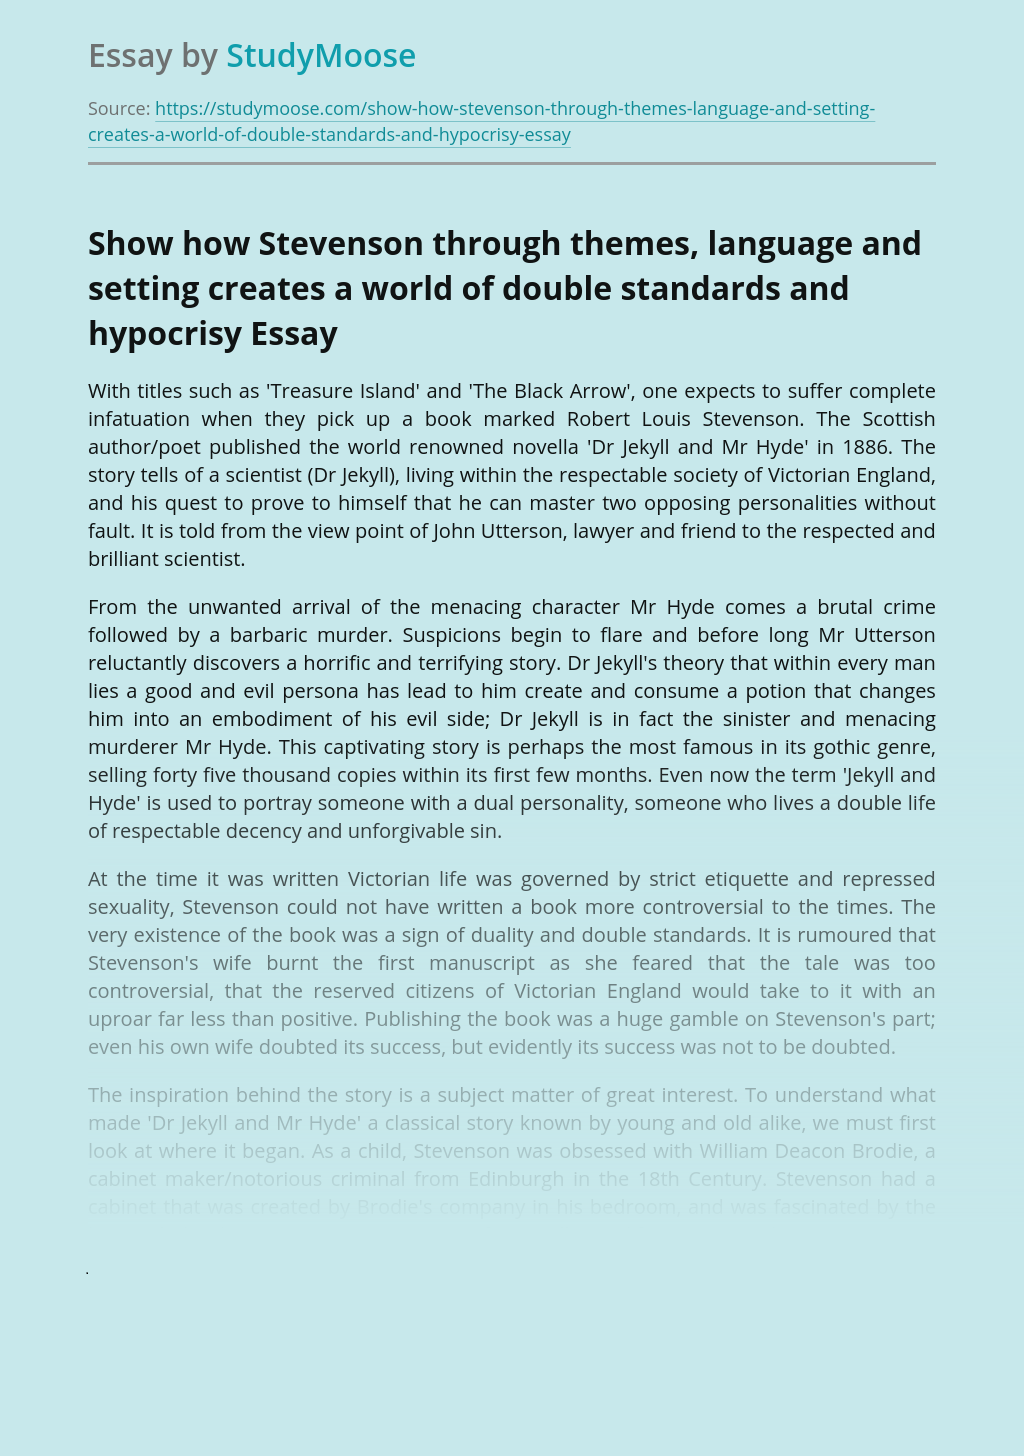 Show how Stevenson through themes, language and setting creates a world of double standards and hypocrisy